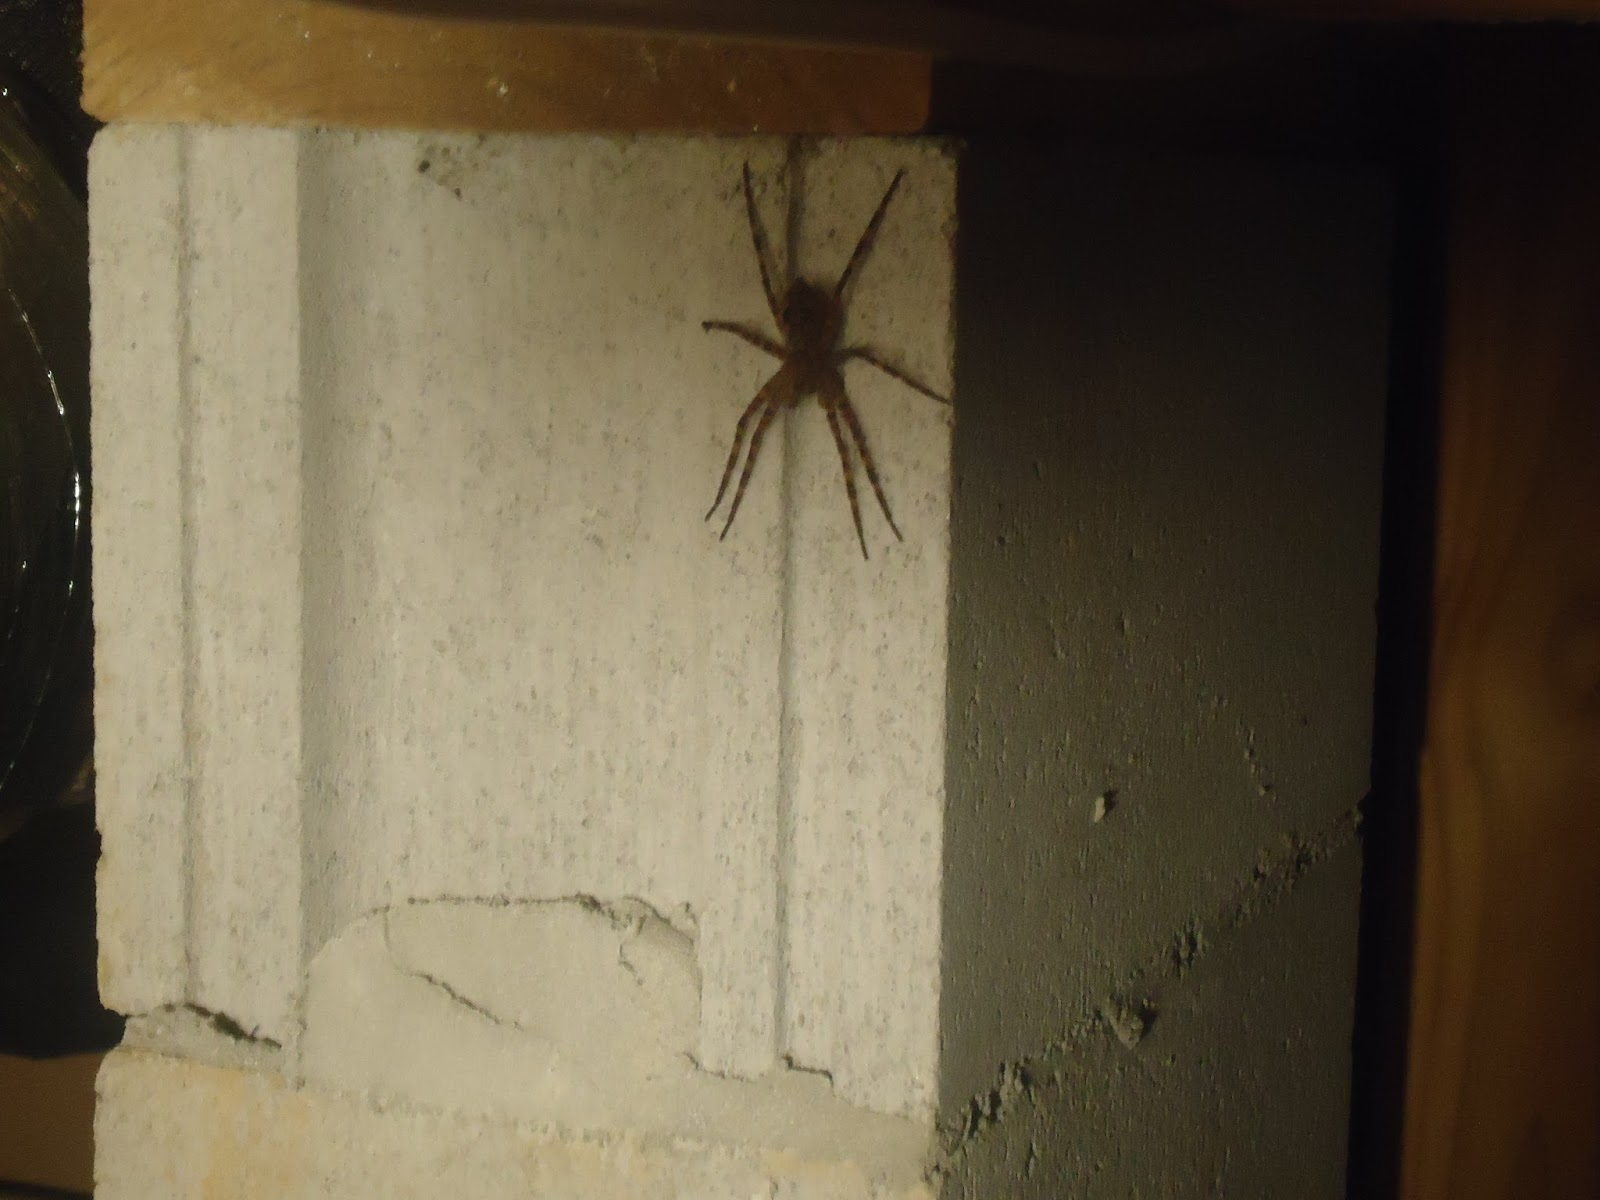 The Daily Dose of Deana: OMG. BIGGEST. SPIDER. EVER. :O